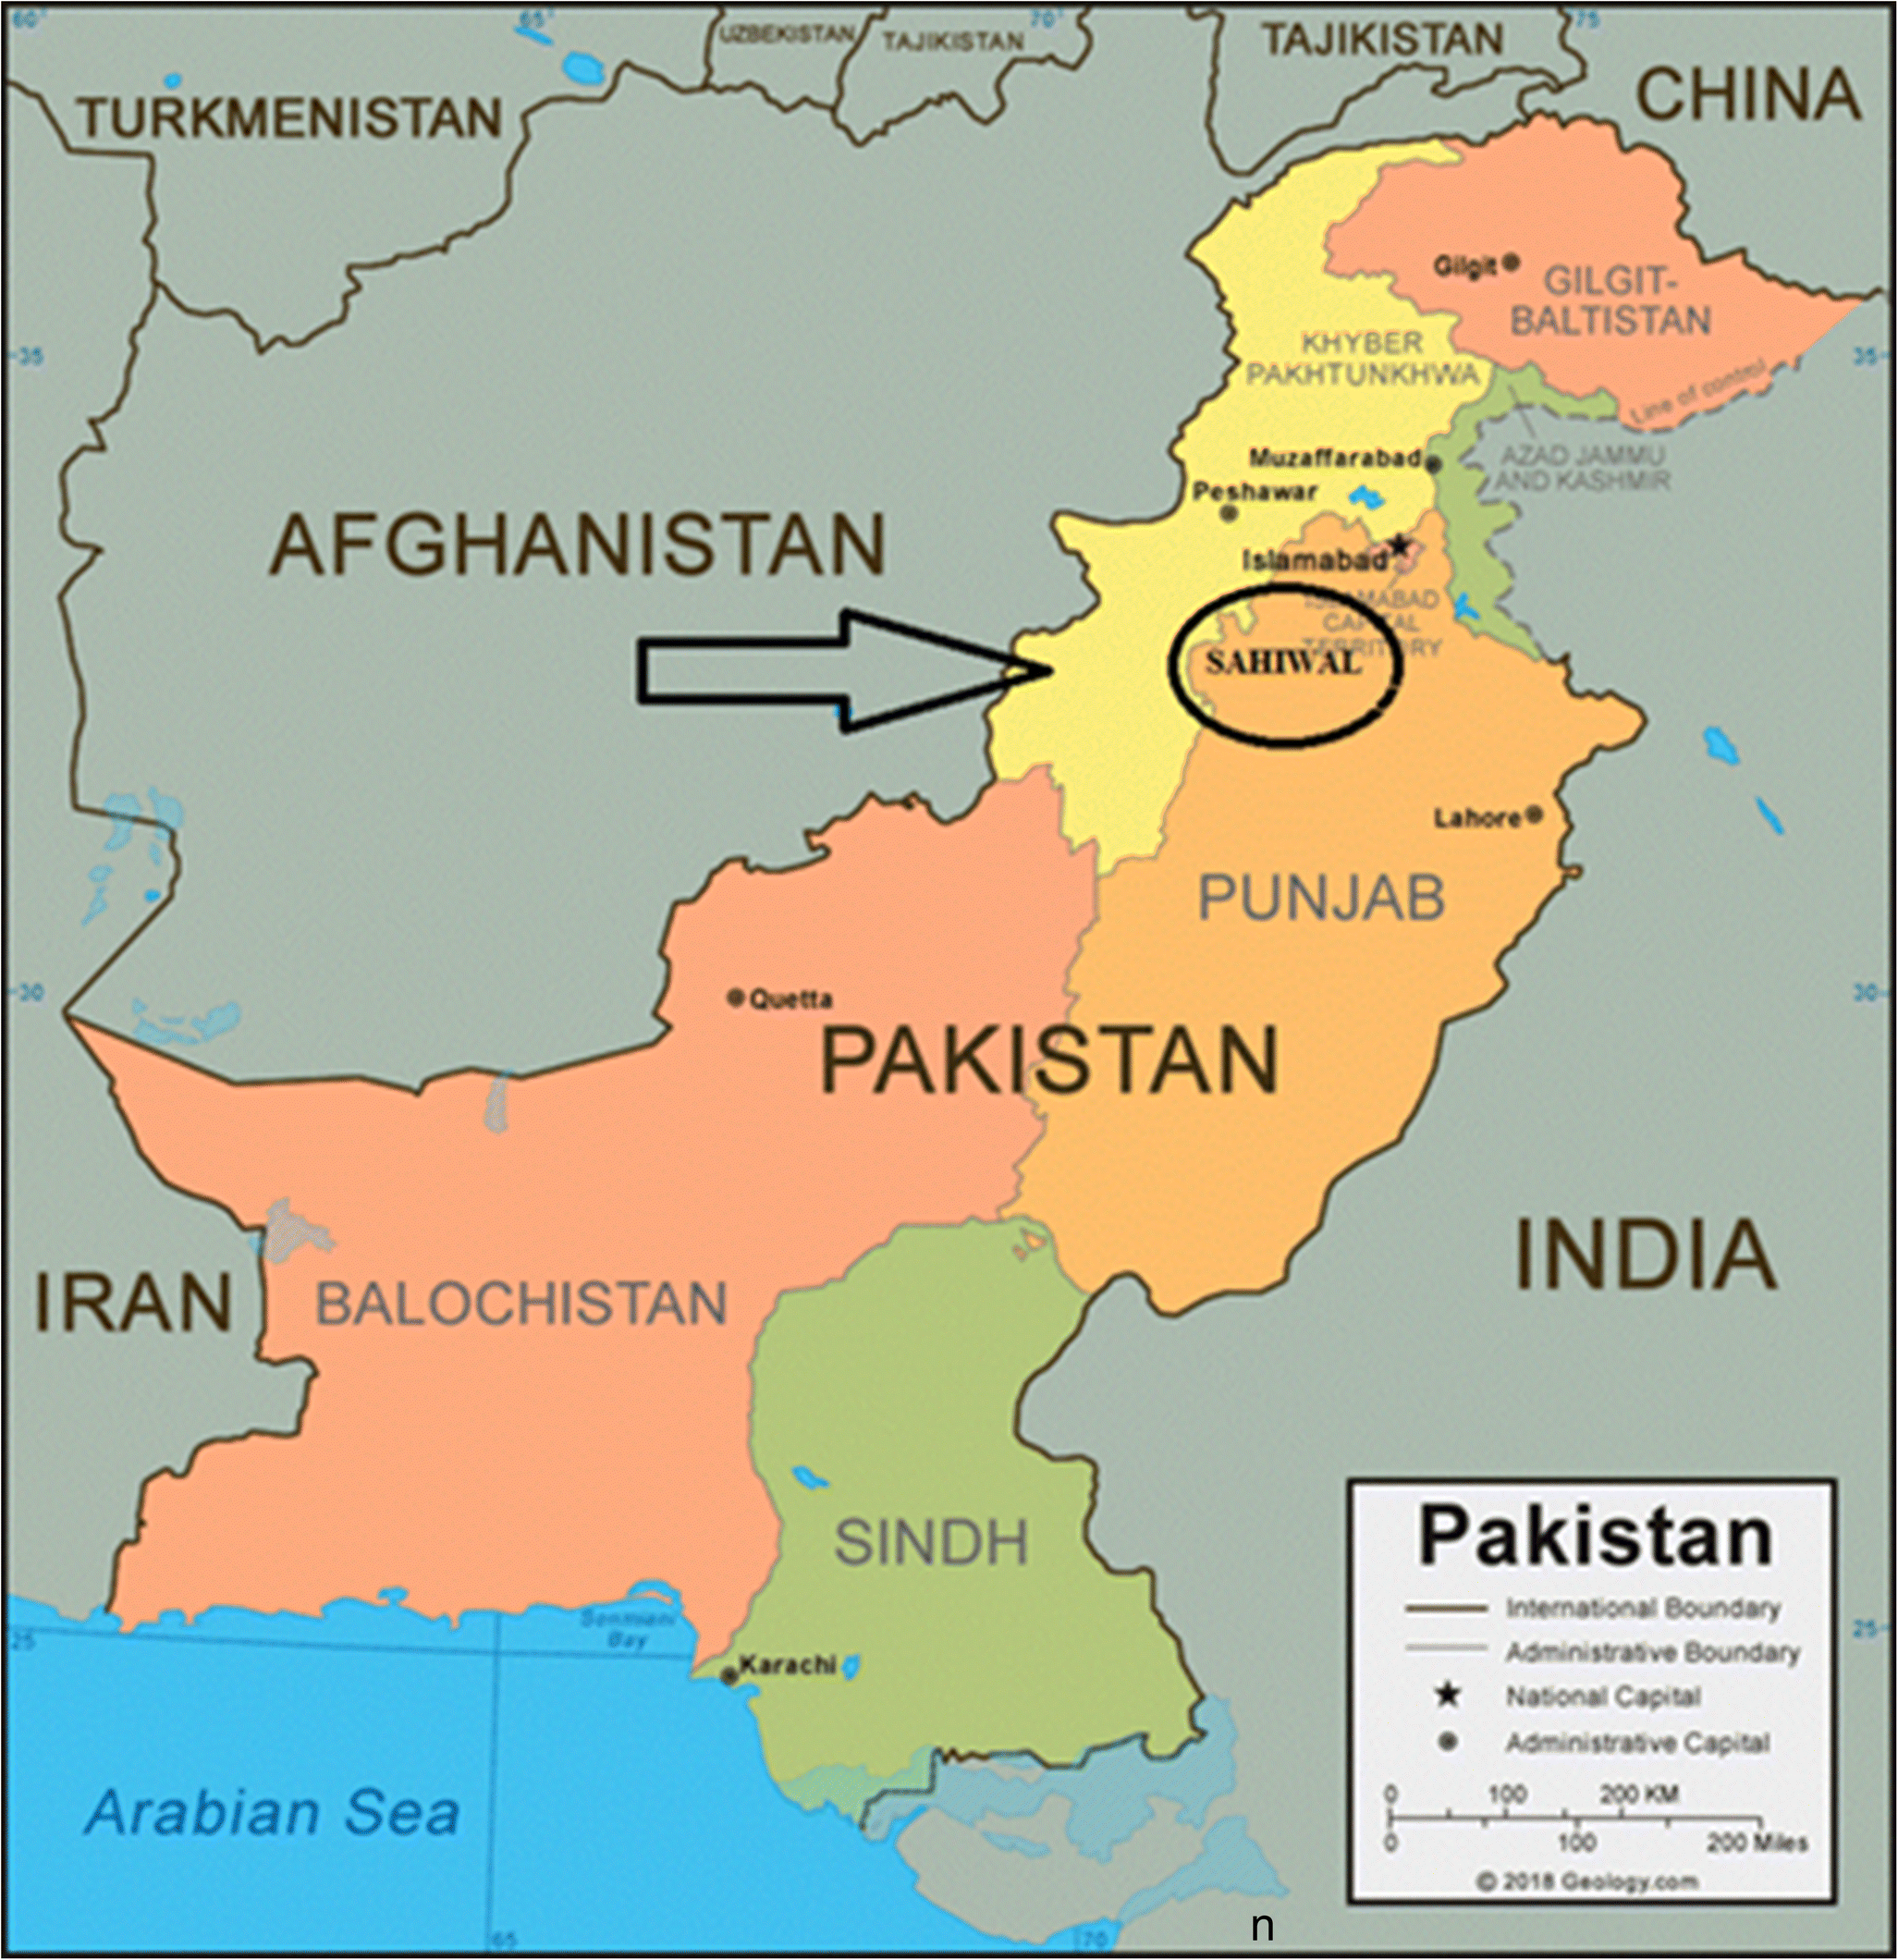 Evaluation of toxic potential of metals in wheat crop grown in ... on world map tank, world map pakistan, world map quetta, world map hyderabad, world map kashmir, world map islamabad, world map bengal, world map taxila, world map punjab, world map karachi, world map peshawar, world map faisalabad, world map afghanistan,